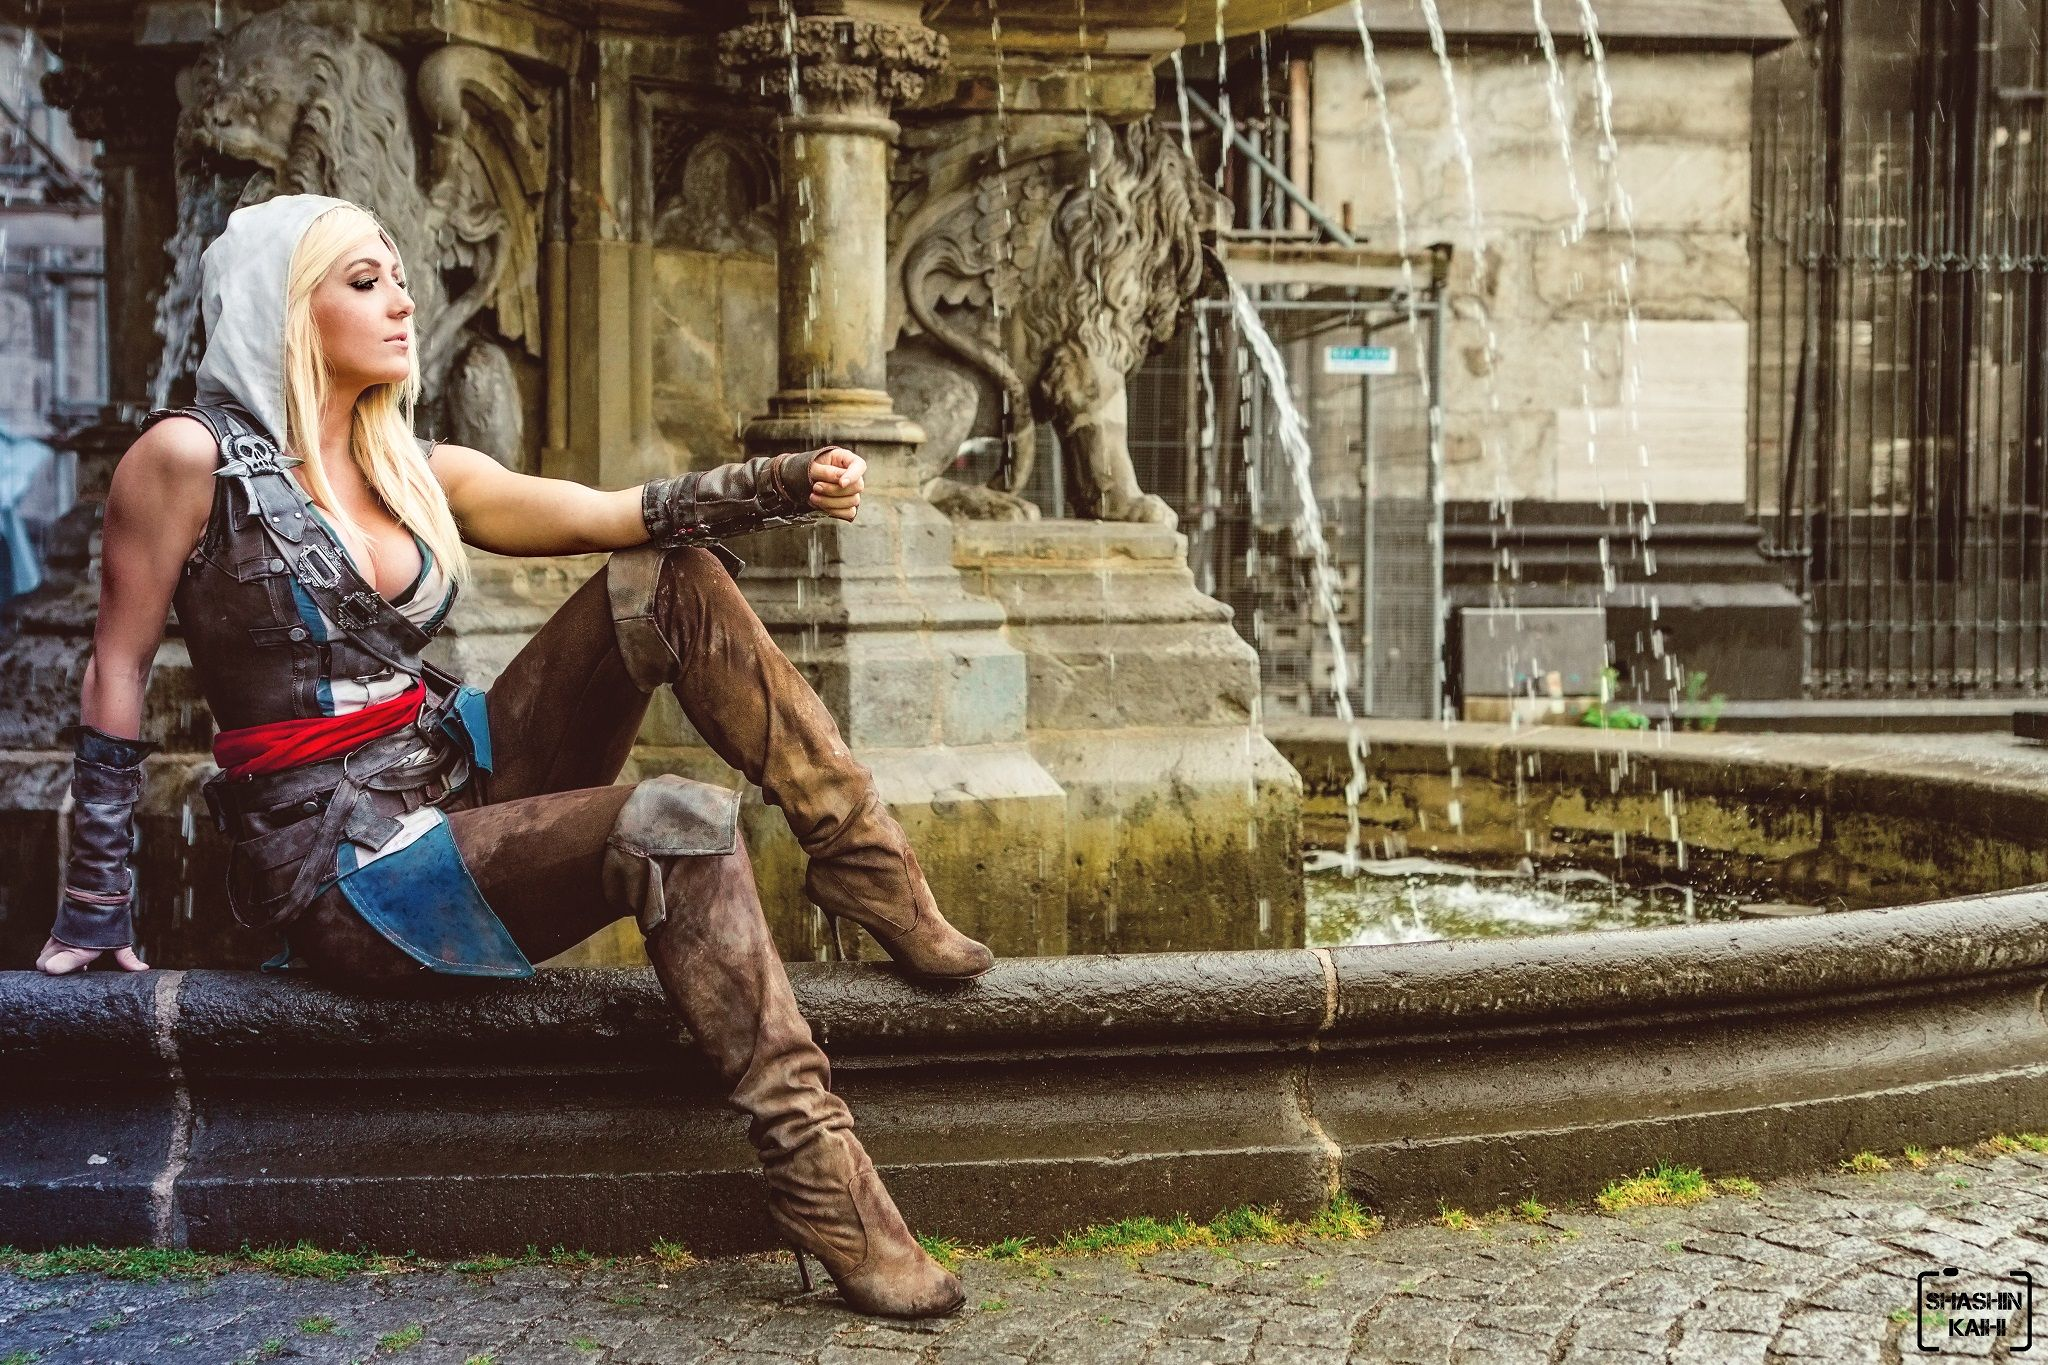 Hot assassins creed girls nude — img 4